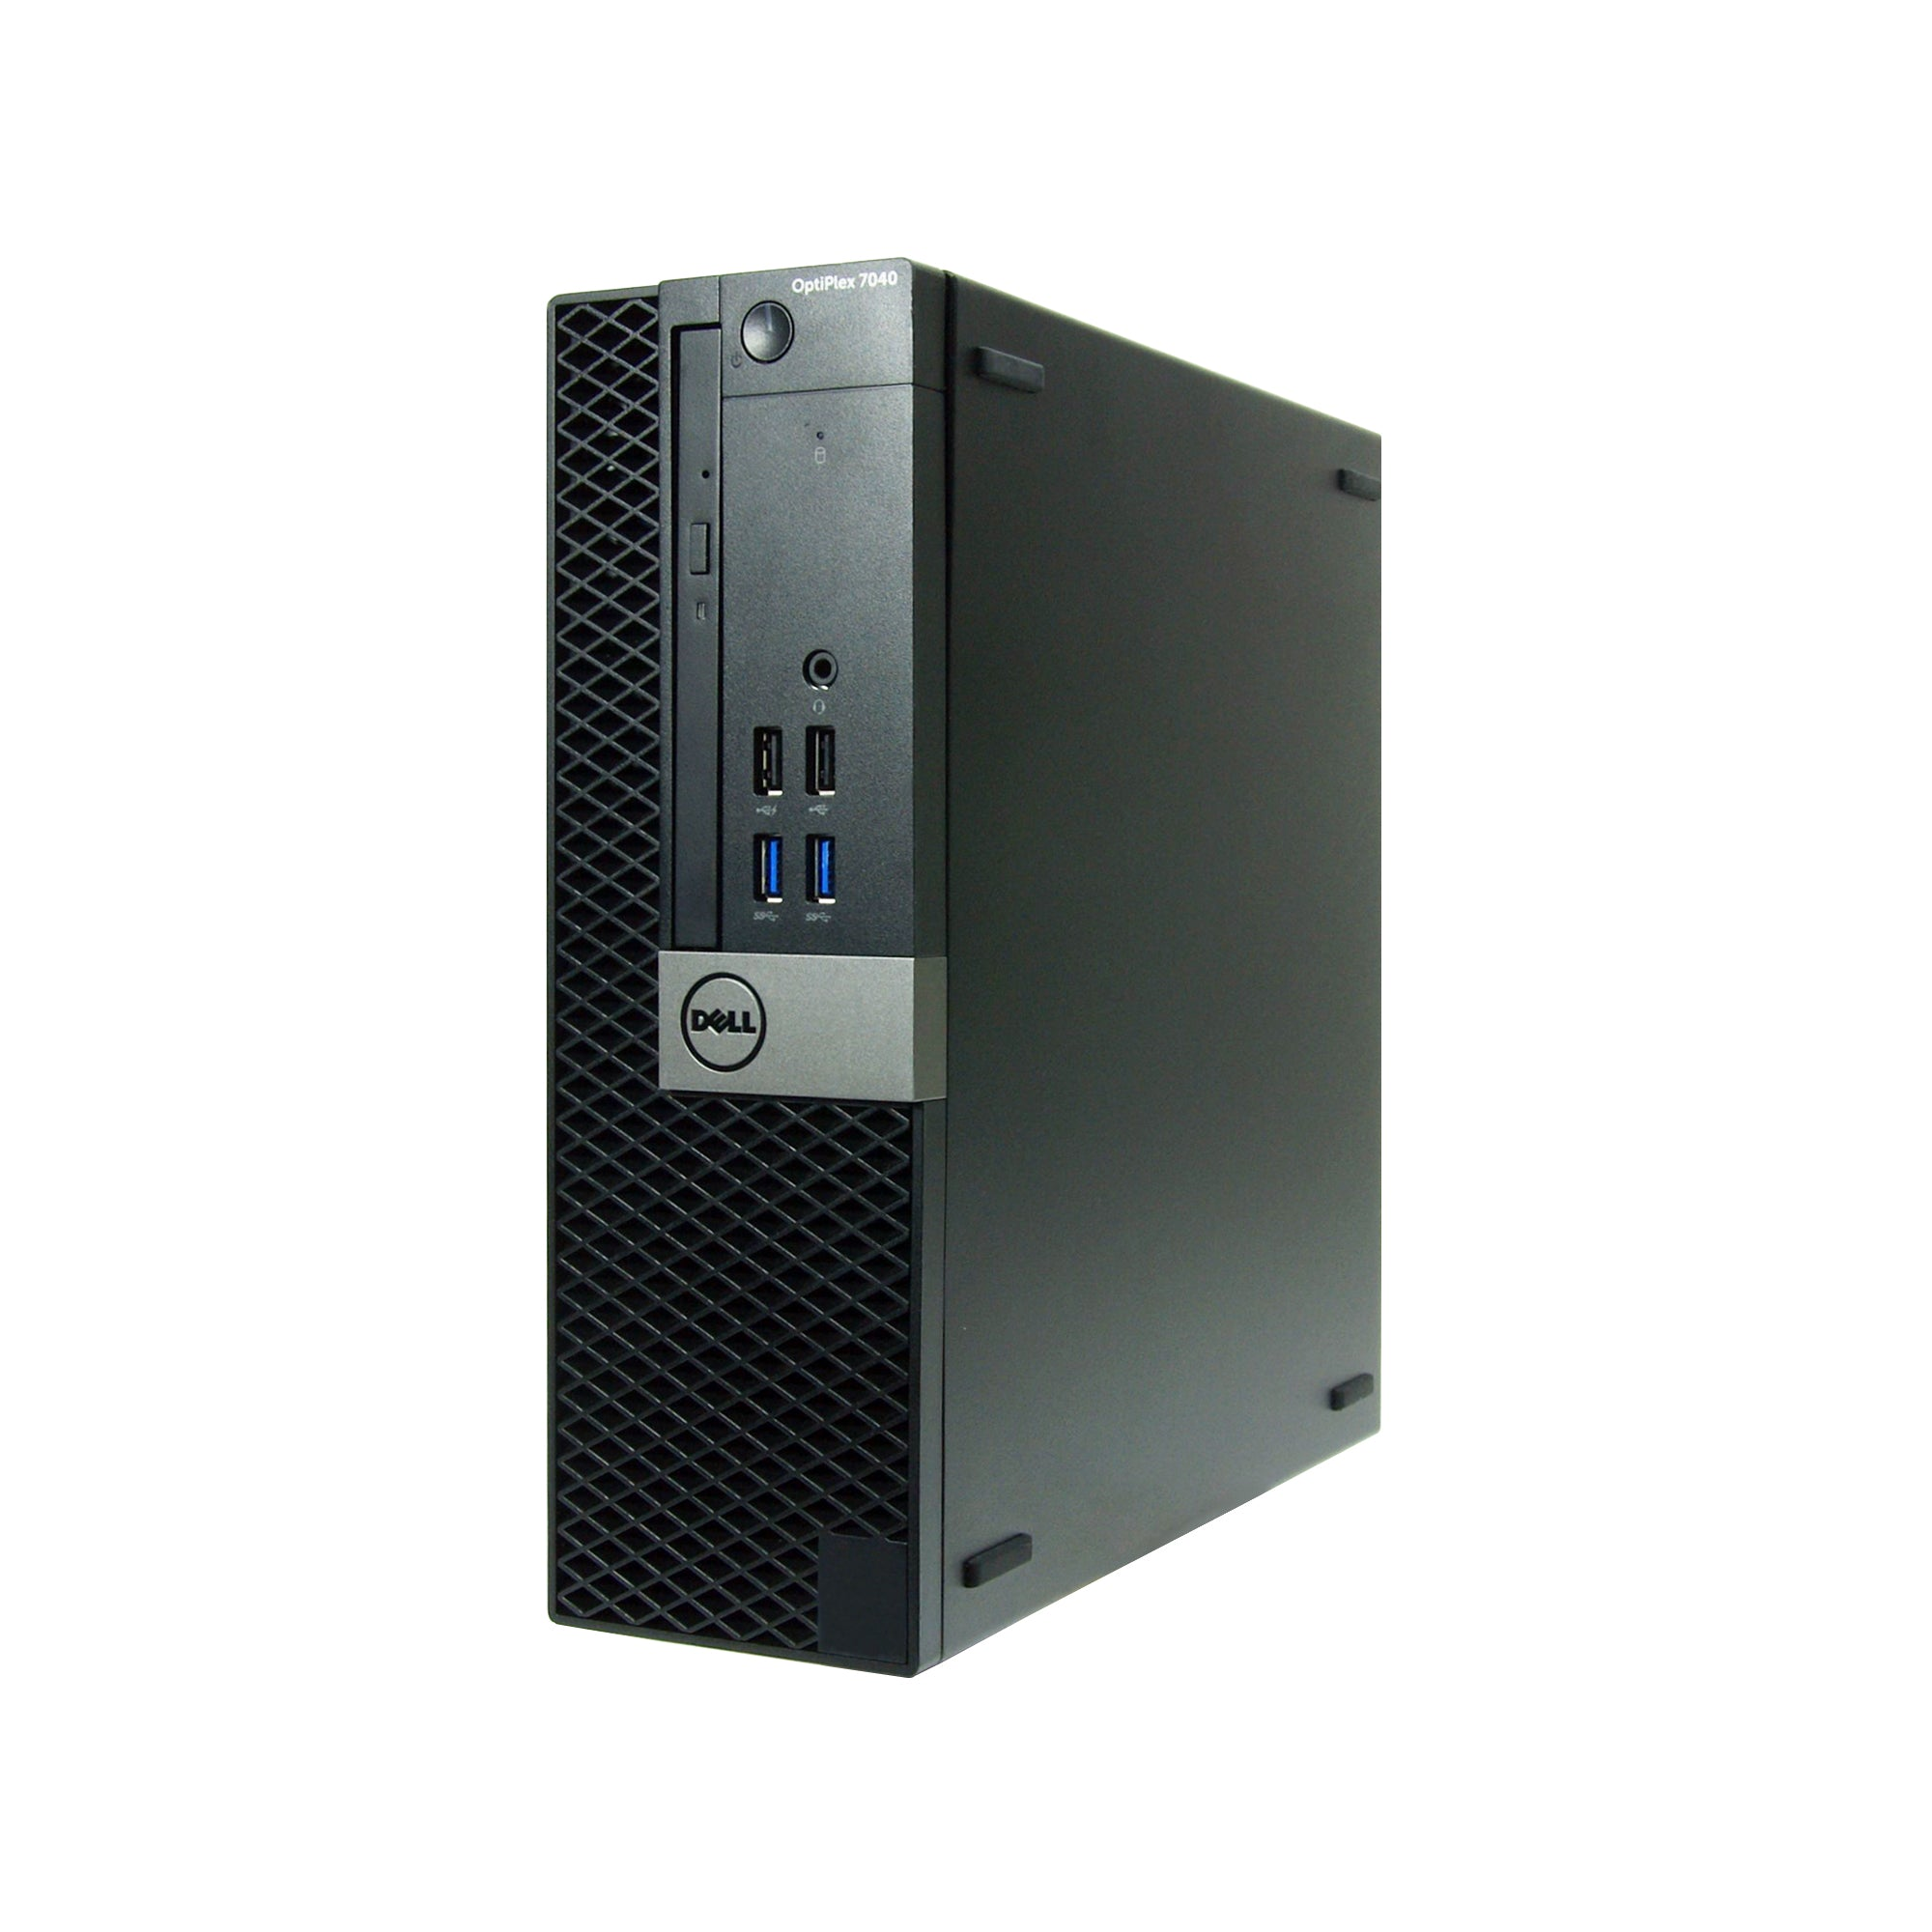 System Bundle - Dell OptiPlex 7040 Ex Lease SFF Desktop i5-6500 3.2GHz 8GB RAM 512GB SSD Windows 10 HOME + 2 x 22inch Brand monitor + Keyboard and mouse (All required cable will be provided)